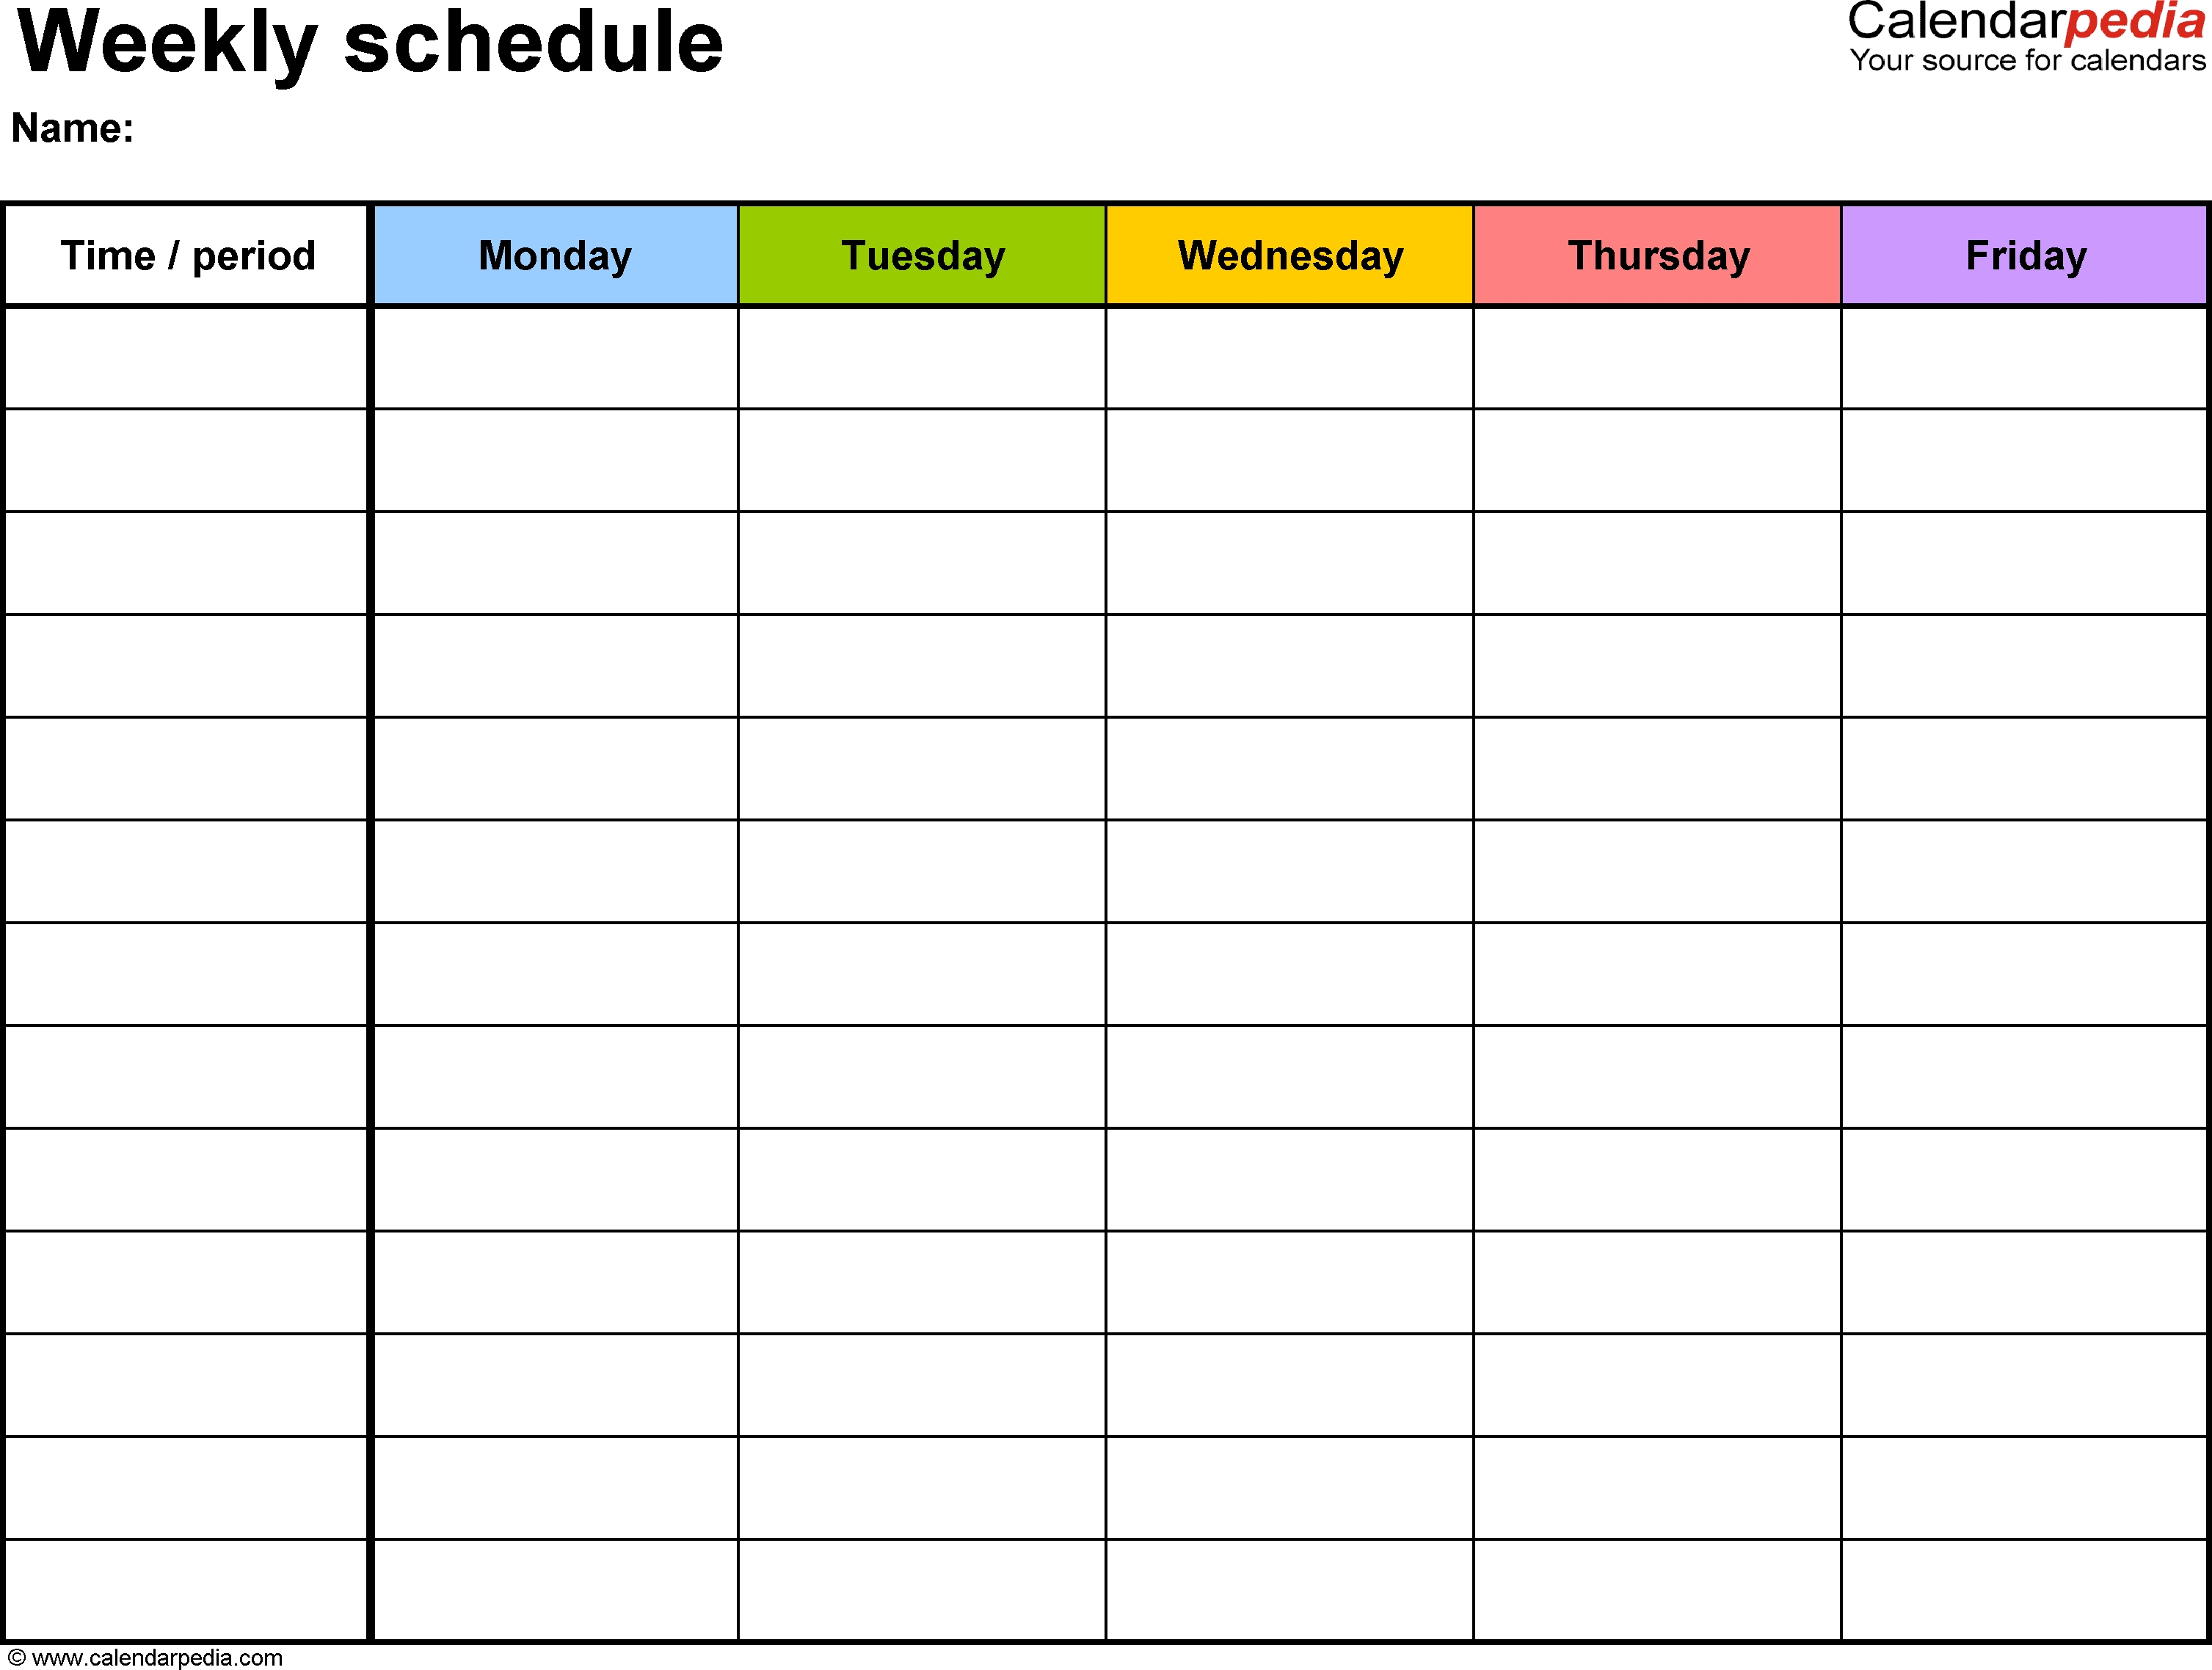 Free Weekly Schedule Templates For Excel - 18 Templates regarding Blank Calendar Printable With Times